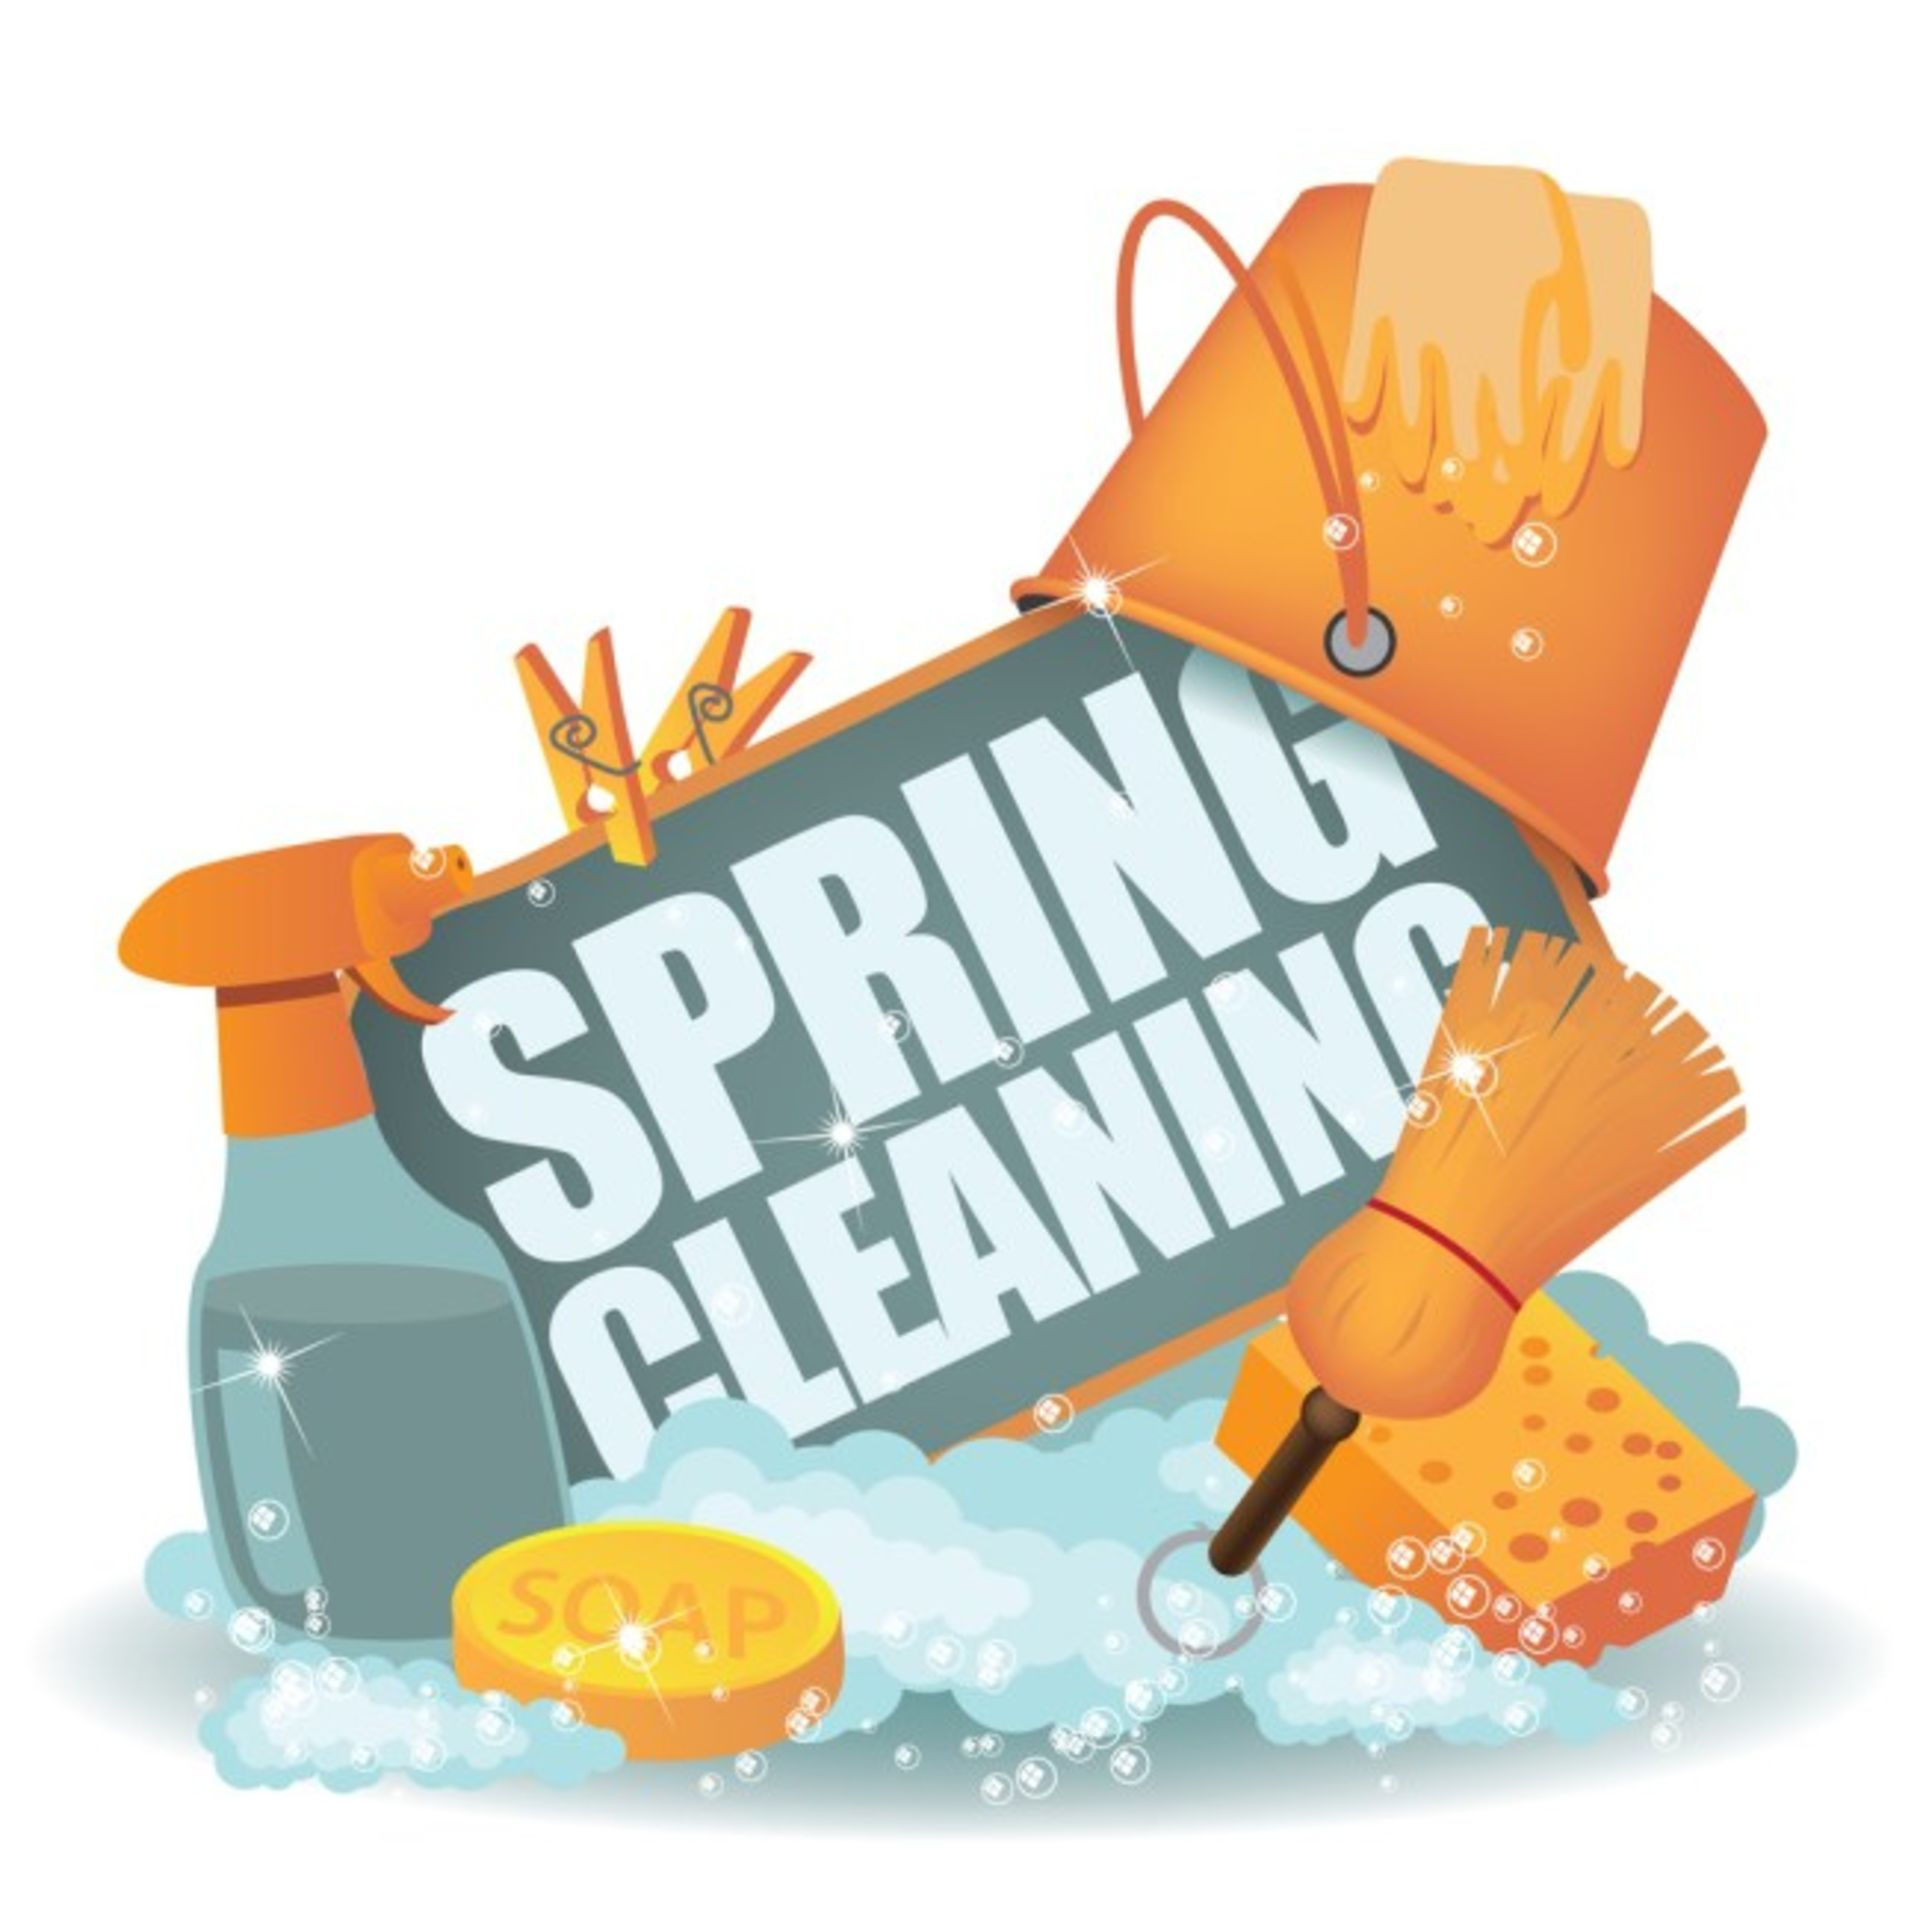 Spring is here!  Time to Spring Clean